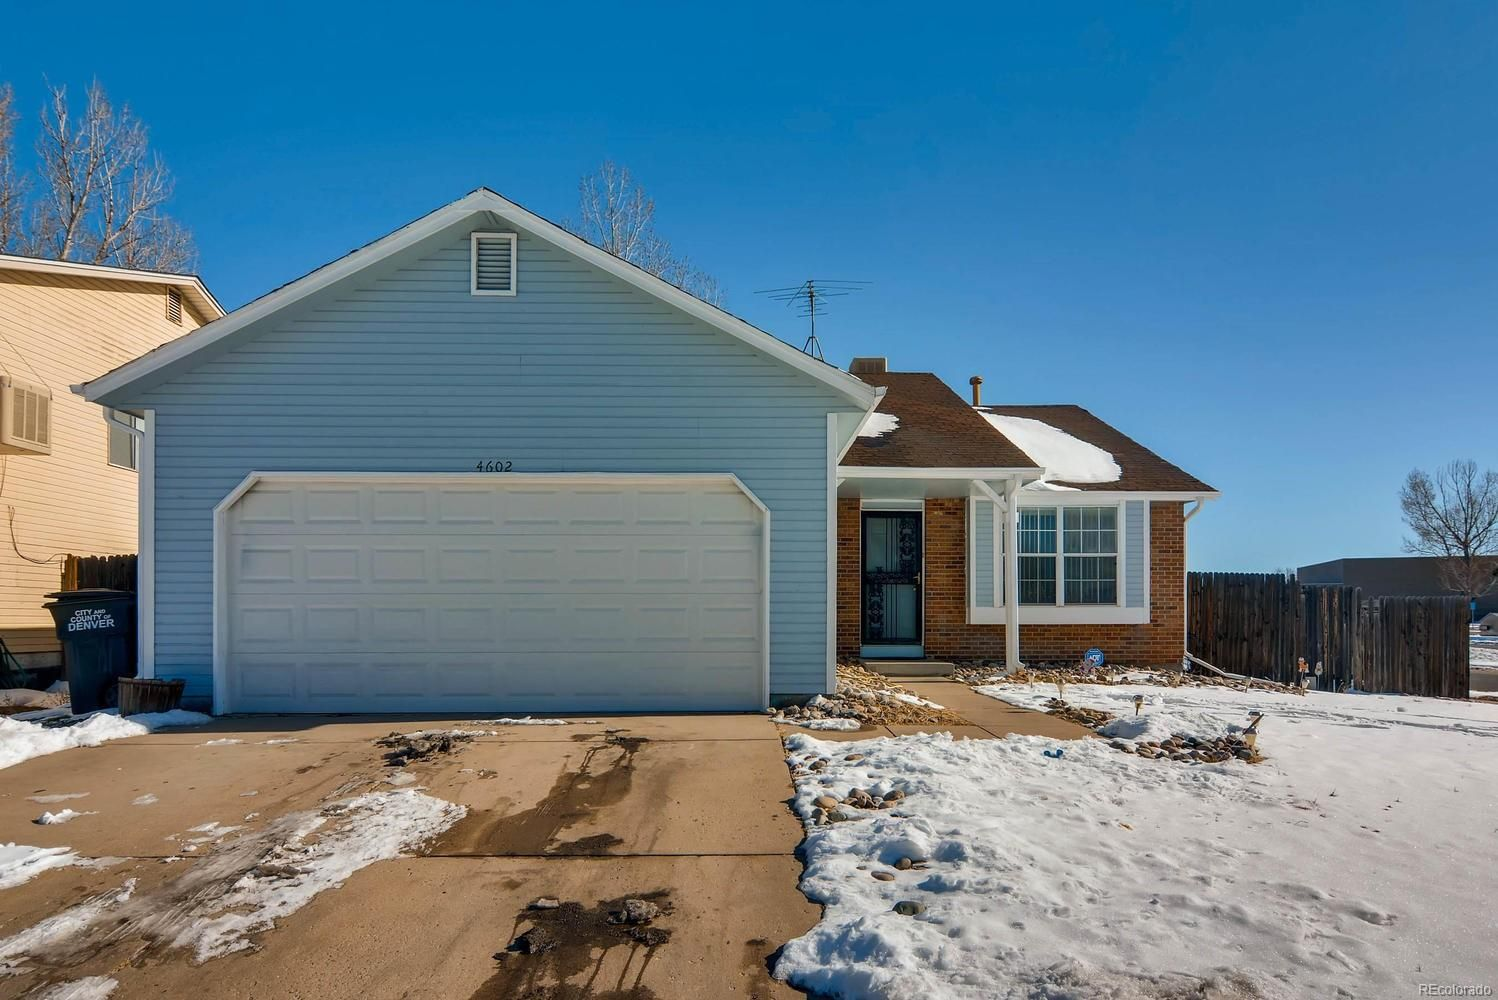 4602 Dearborn St, Denver, CO 80239 - Recently Sold | Trulia